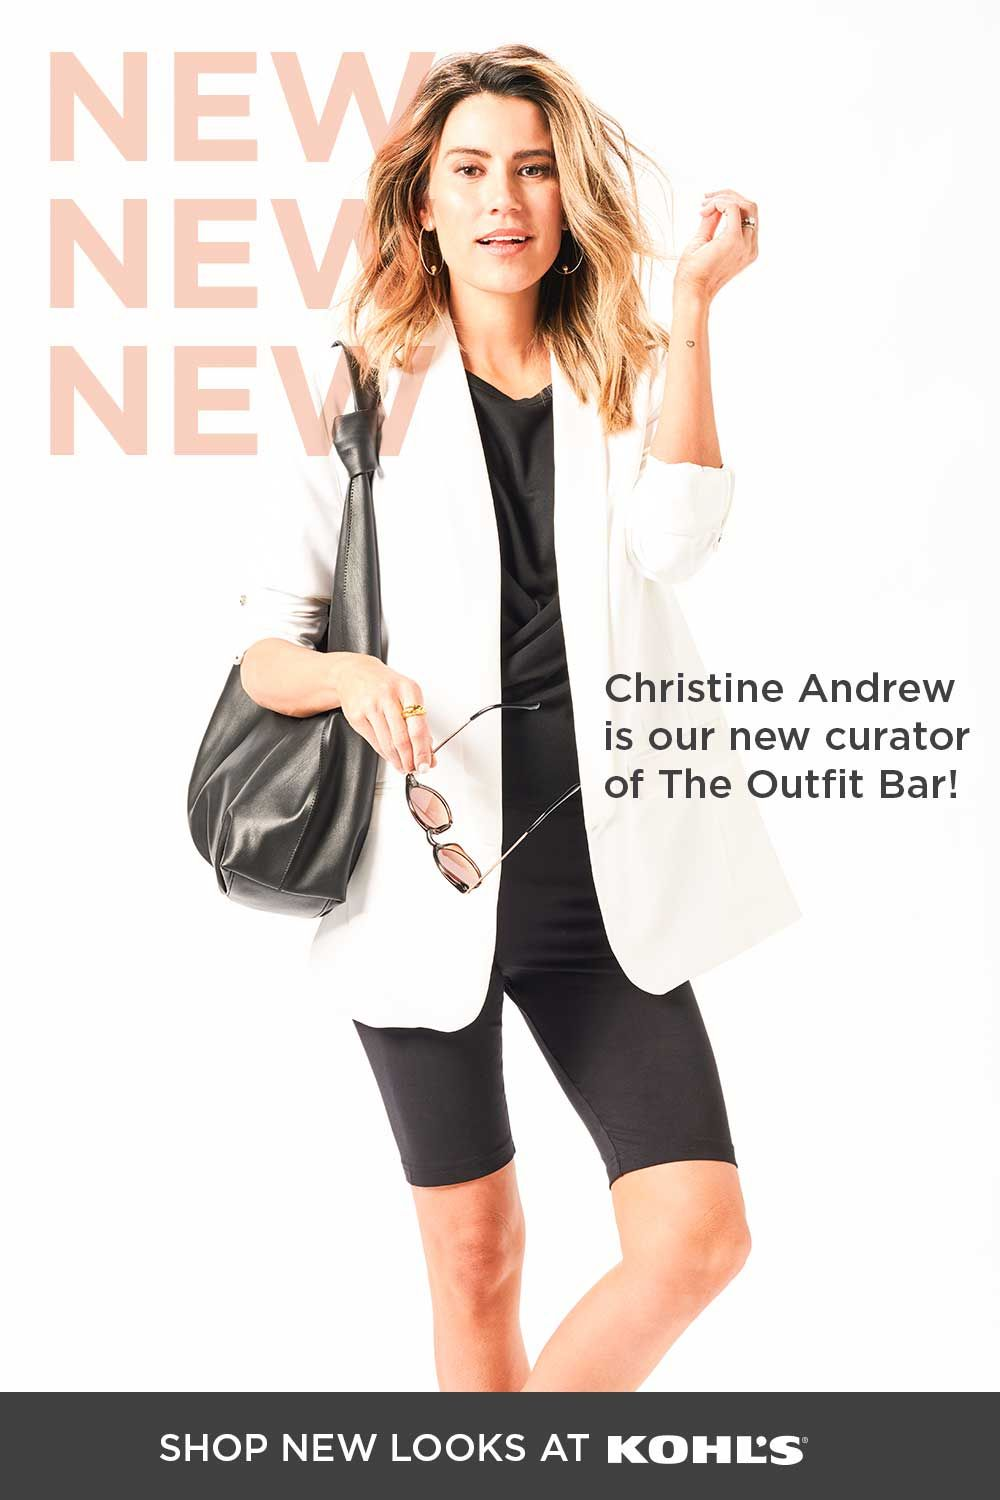 Christine Andrew is our new curator of The Outfit Bar at Kohl's.